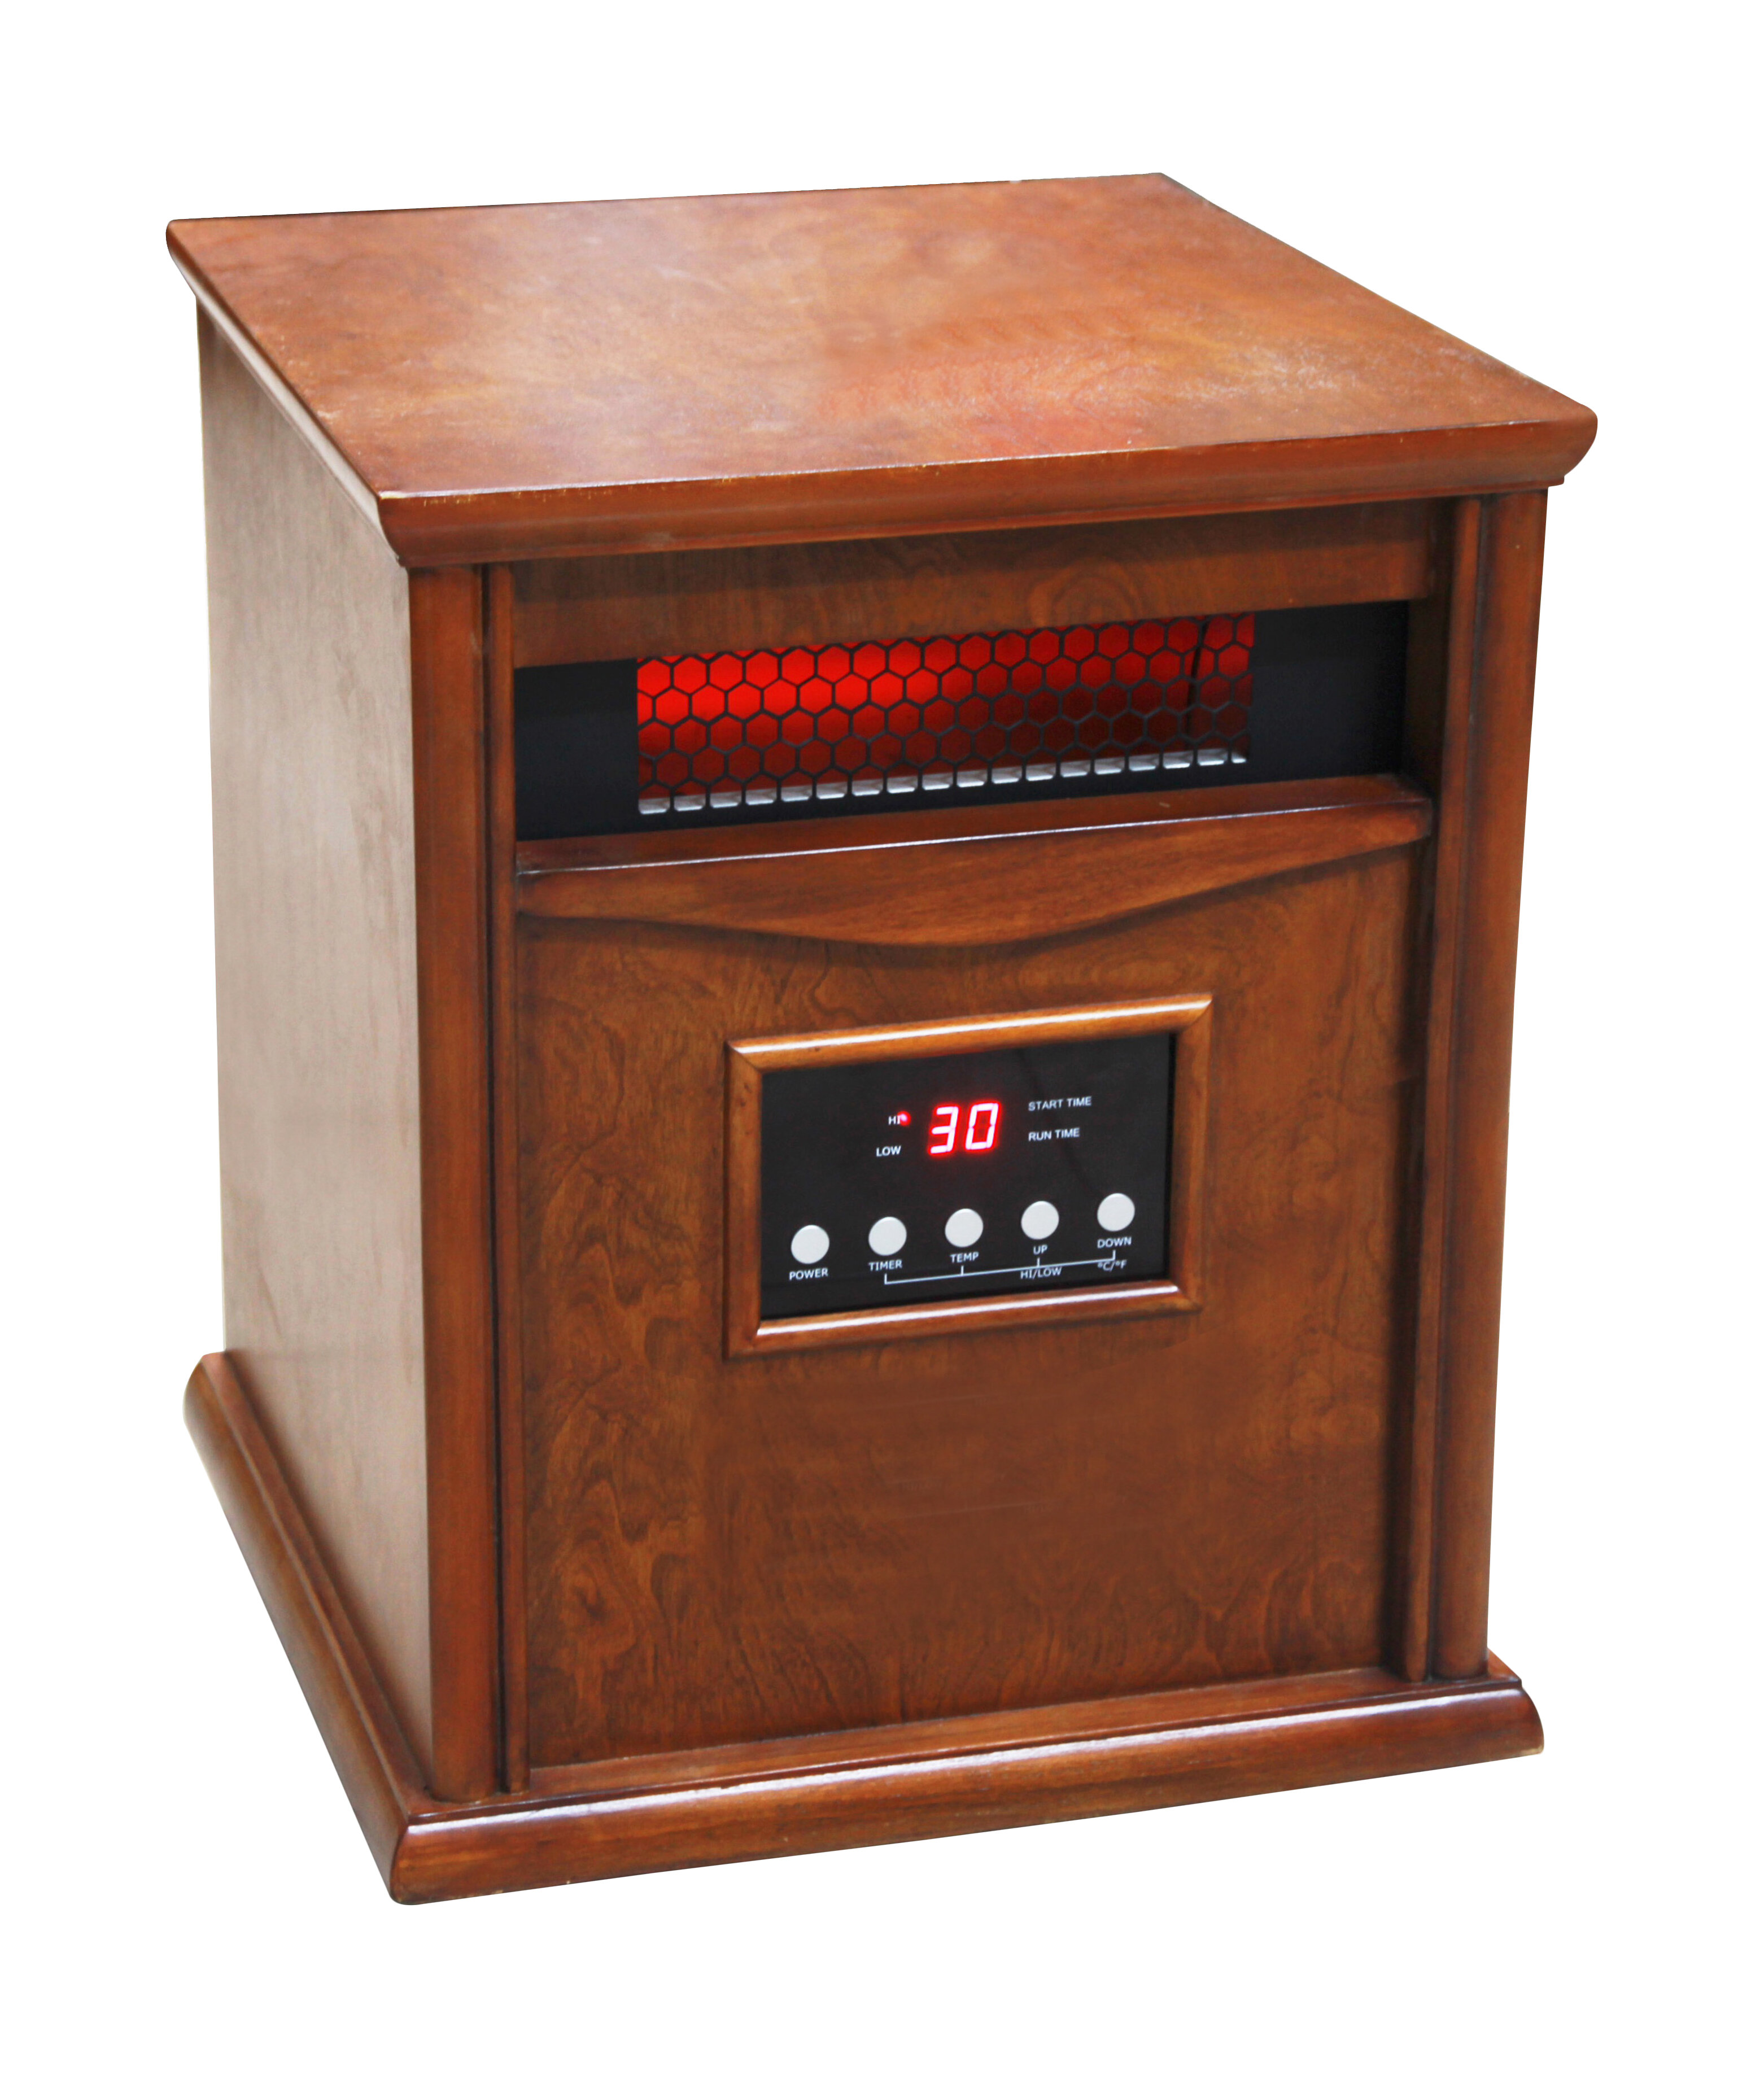 Dynamic Infrared 1500 Watt Portable Electric Cabinet Baseboard Heaters As Well Small Heater With Reviews